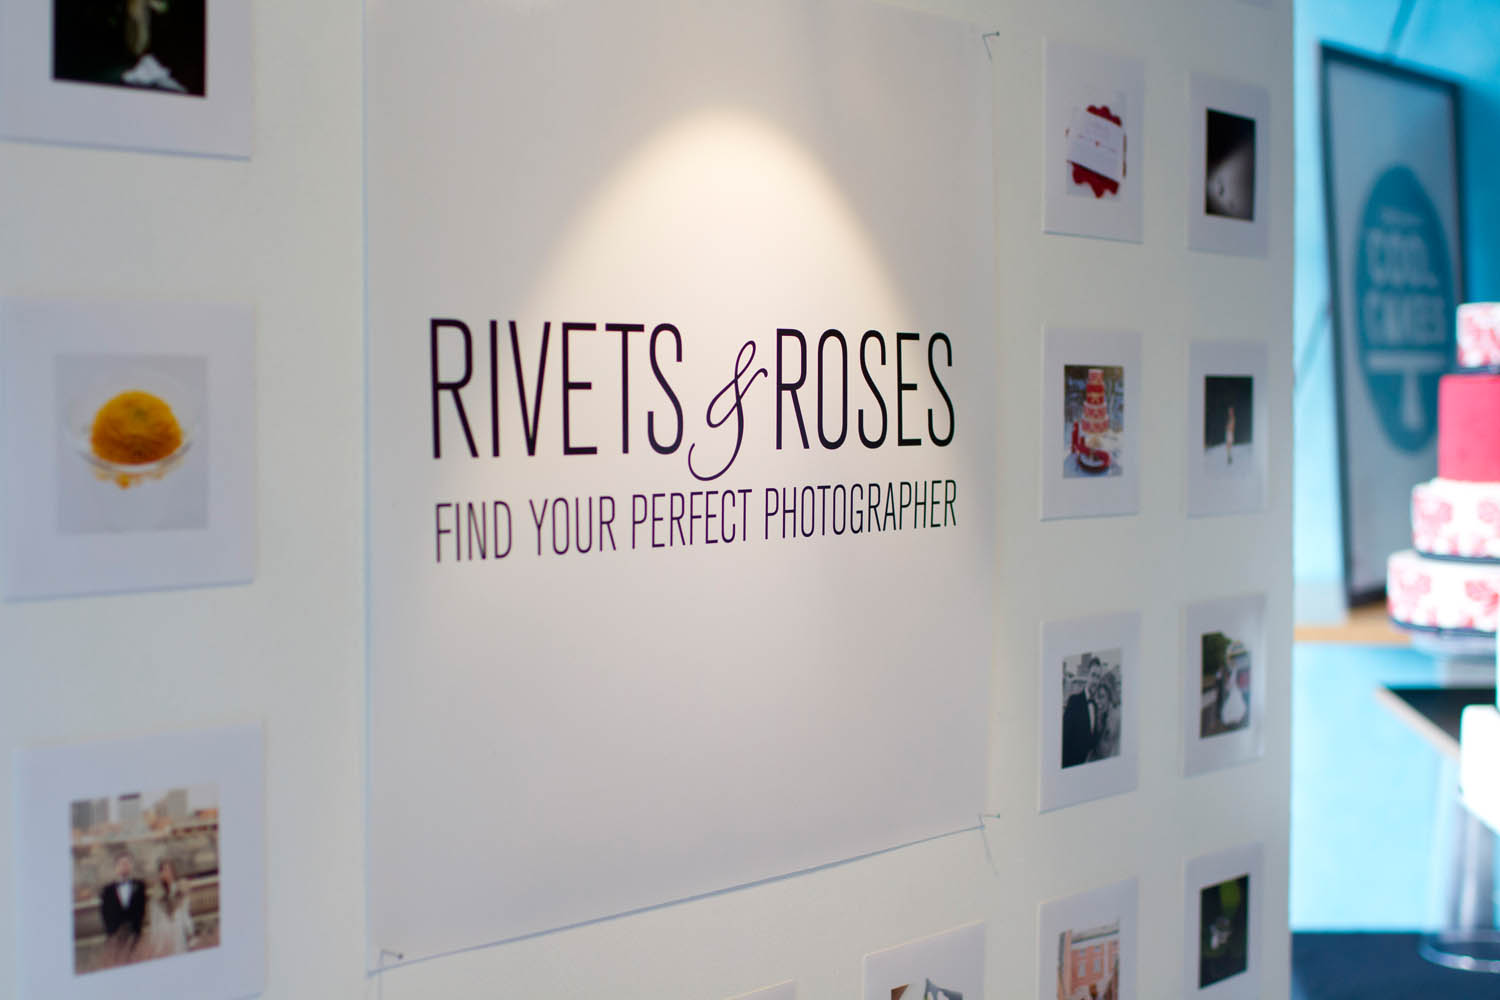 Desiree Mostad, Rivets and Roses, Den store Bryllupsfesten, International Wedding Photographer, Norway